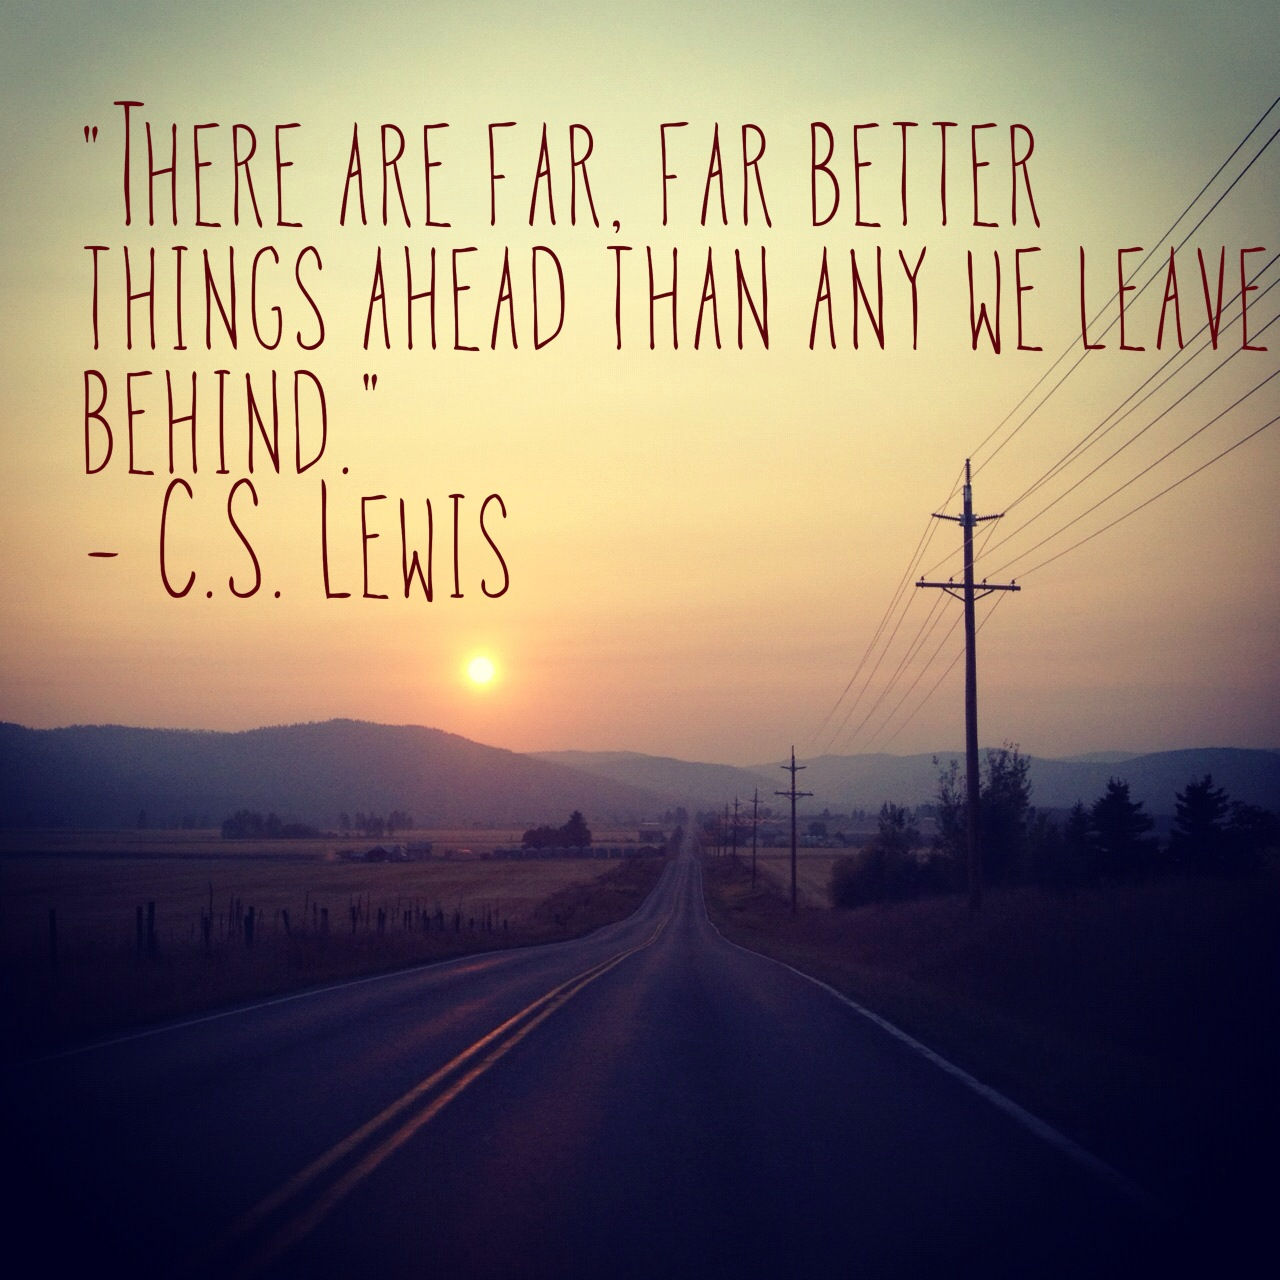 Love Quotes About Life: There Are Far Far Better Things Ahead Than Any We Leave